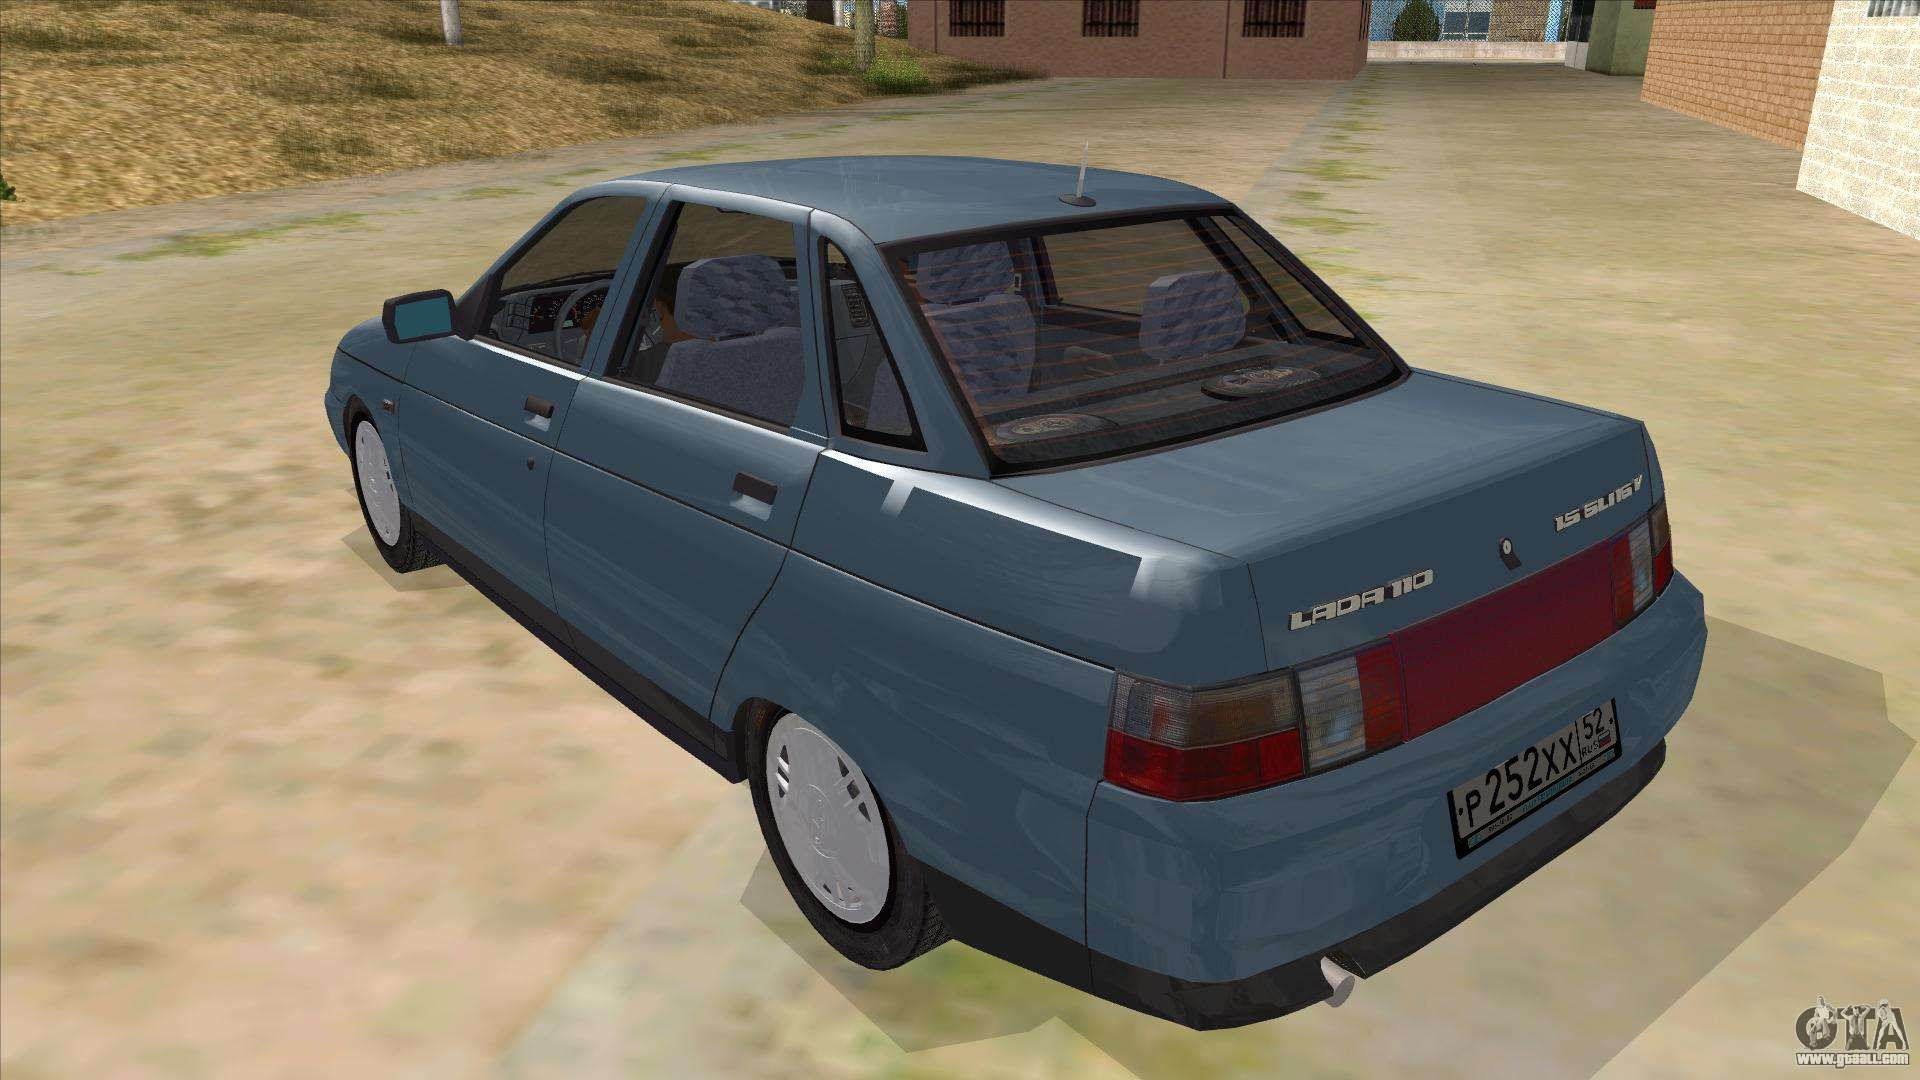 Replacement of rear racks (VAZ 2110). Support of a back rack VAZ 2110